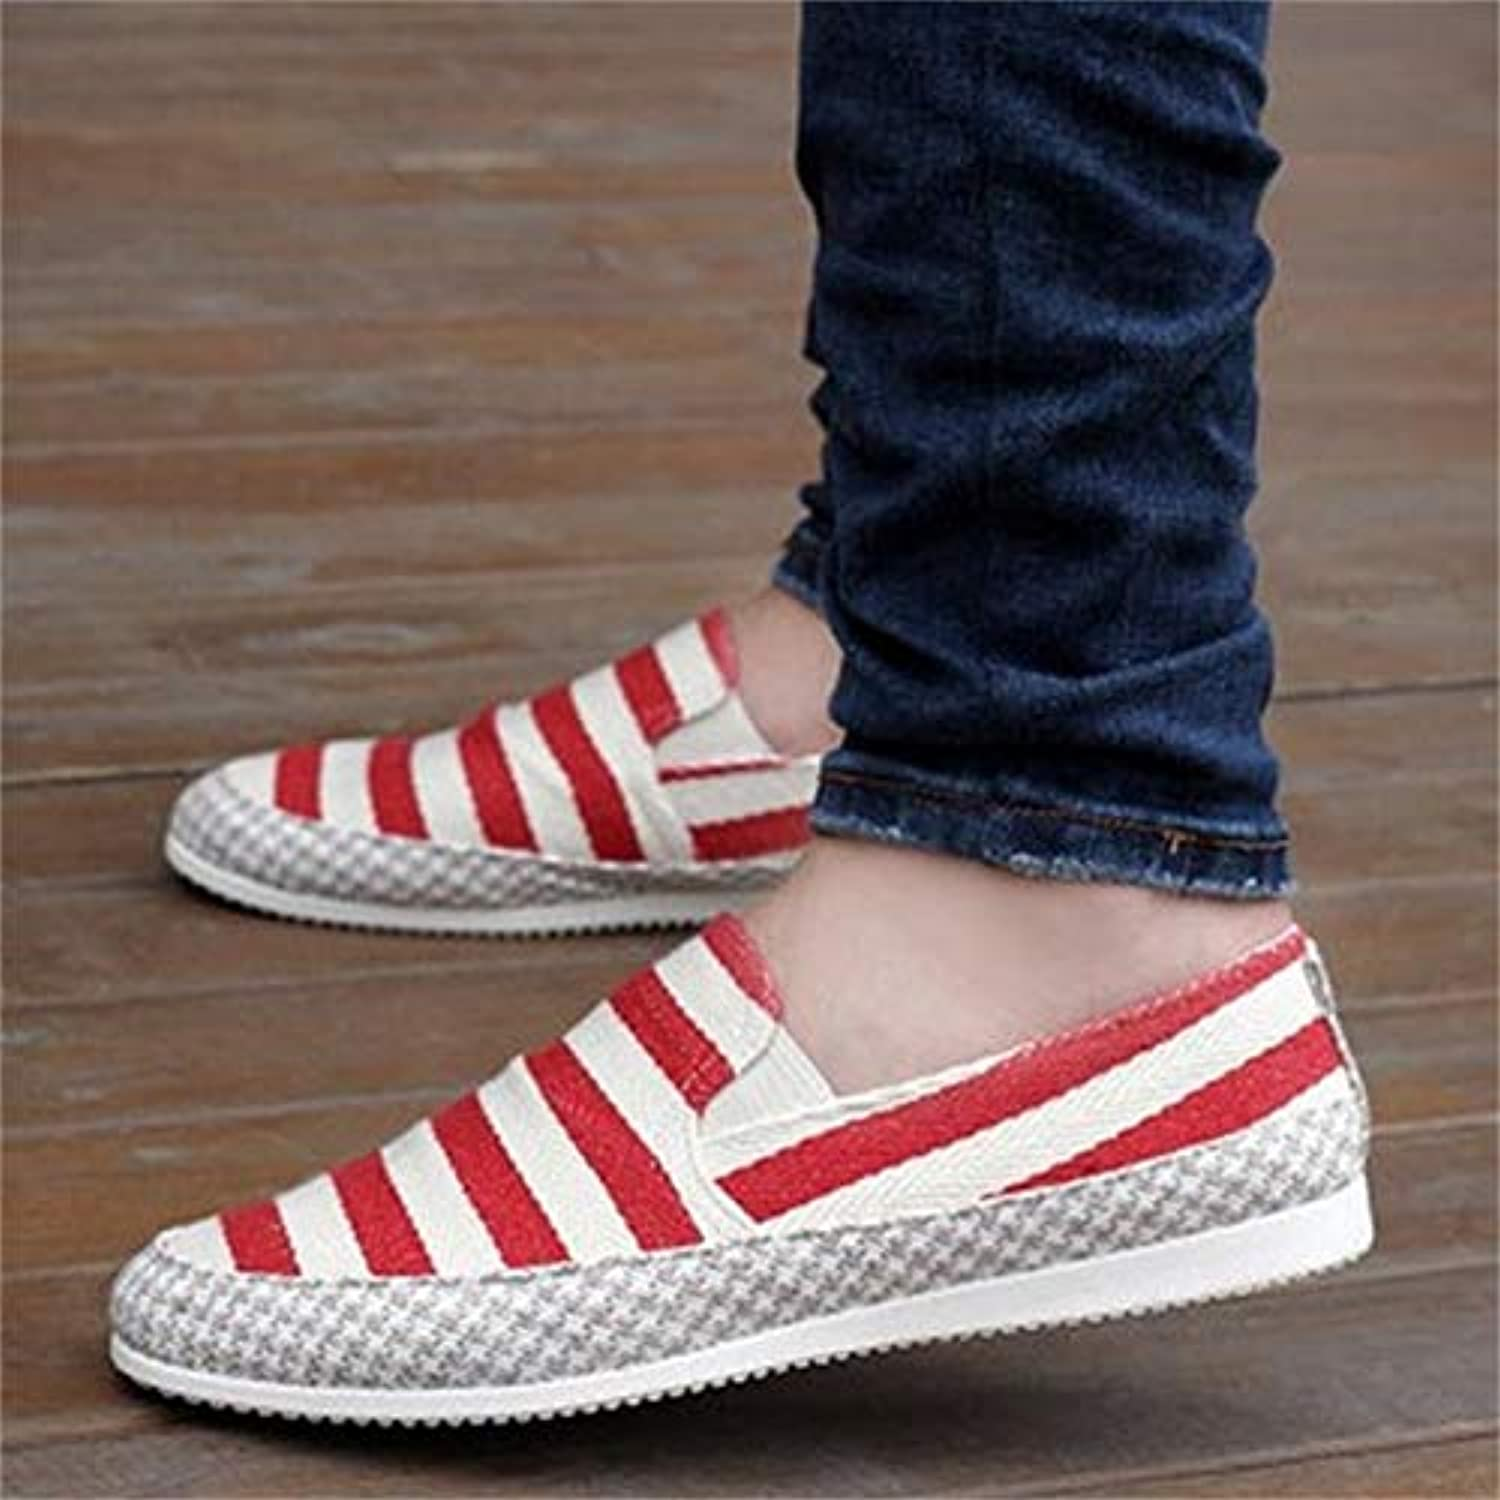 LOVDRAM Men'S Leather shoes Spring And Summer New Peas shoes Casual shoes One Foot Lazy Driving Korean shoes Men'S Trend Breathable Men'S shoes